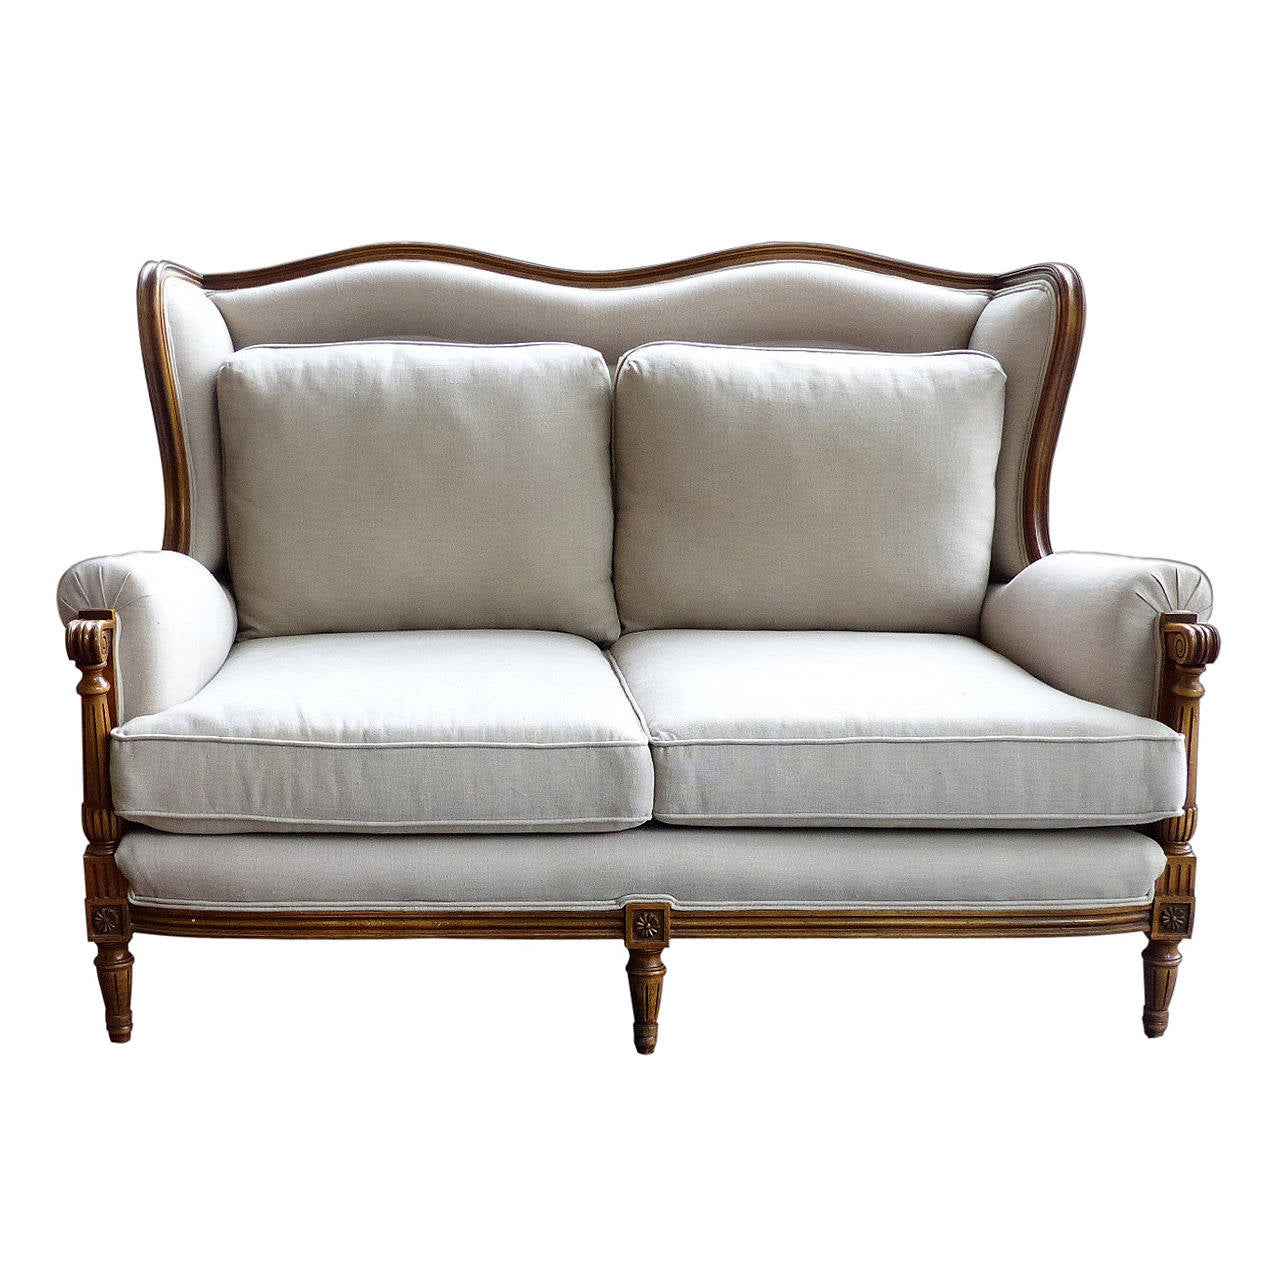 Small settee at 1stdibs for Settee seating